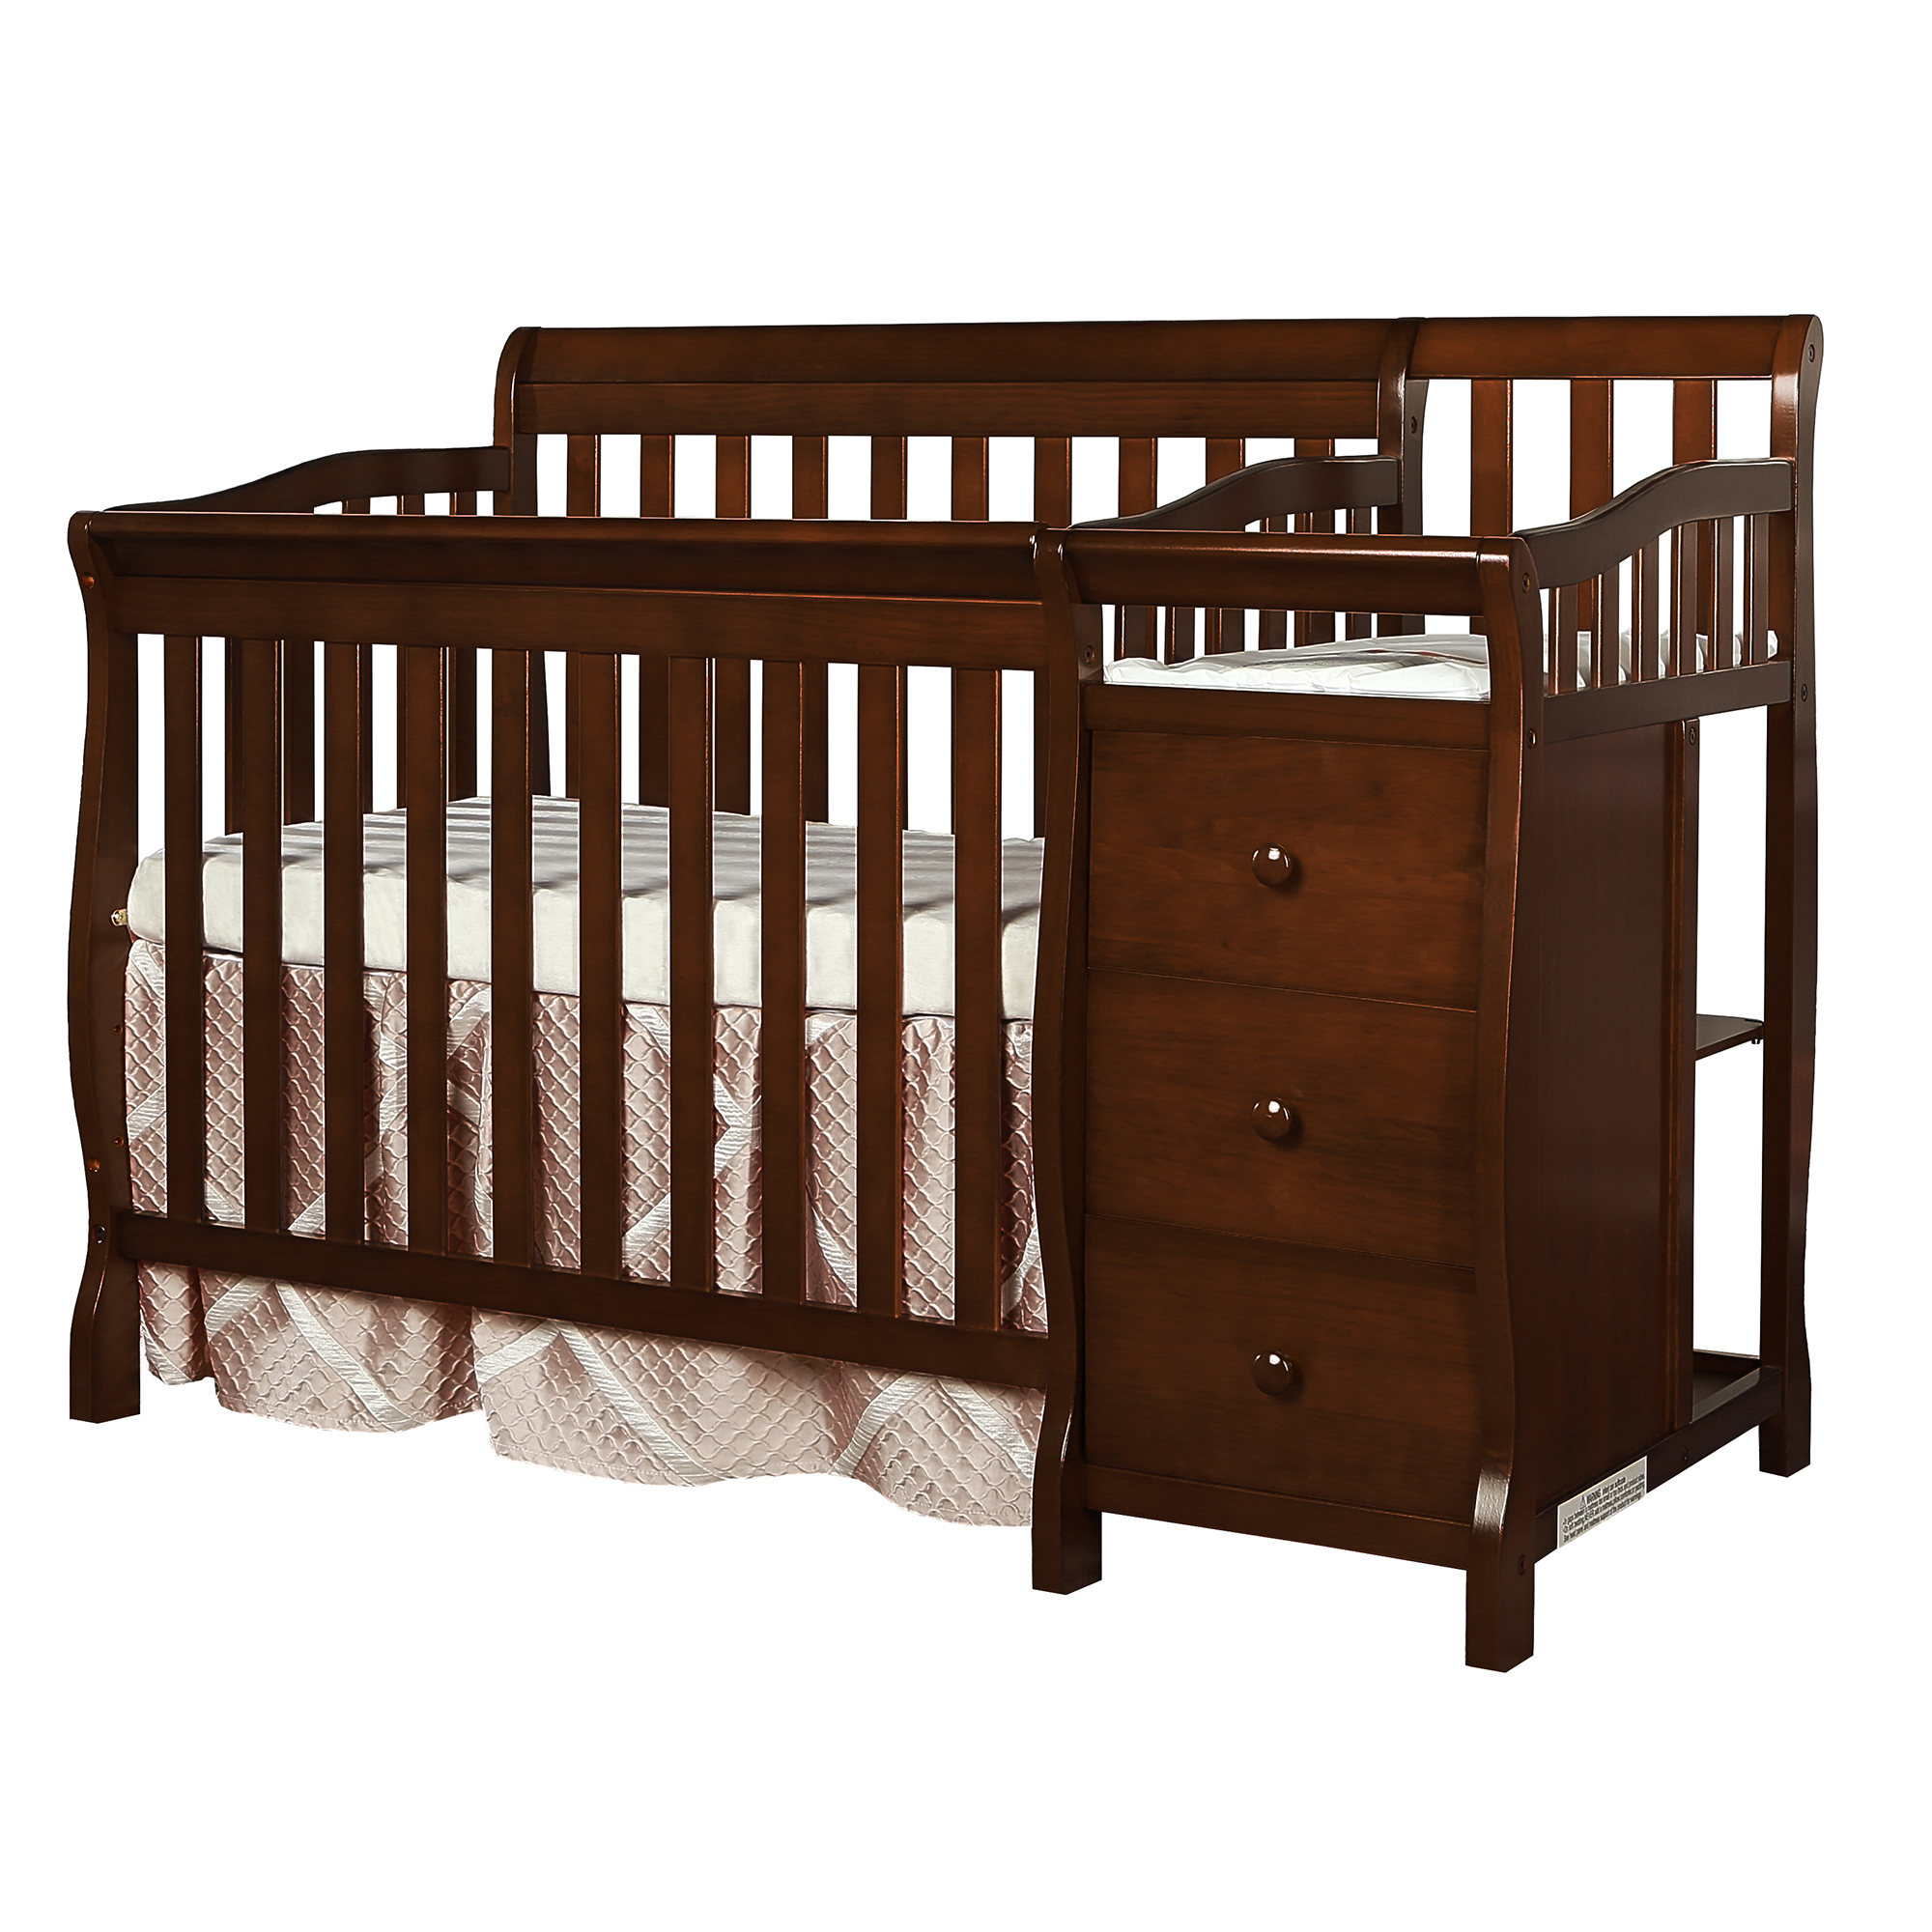 Dream On Me Jayden 4-in-1 Mini Convertible Crib and Changer, Espresso